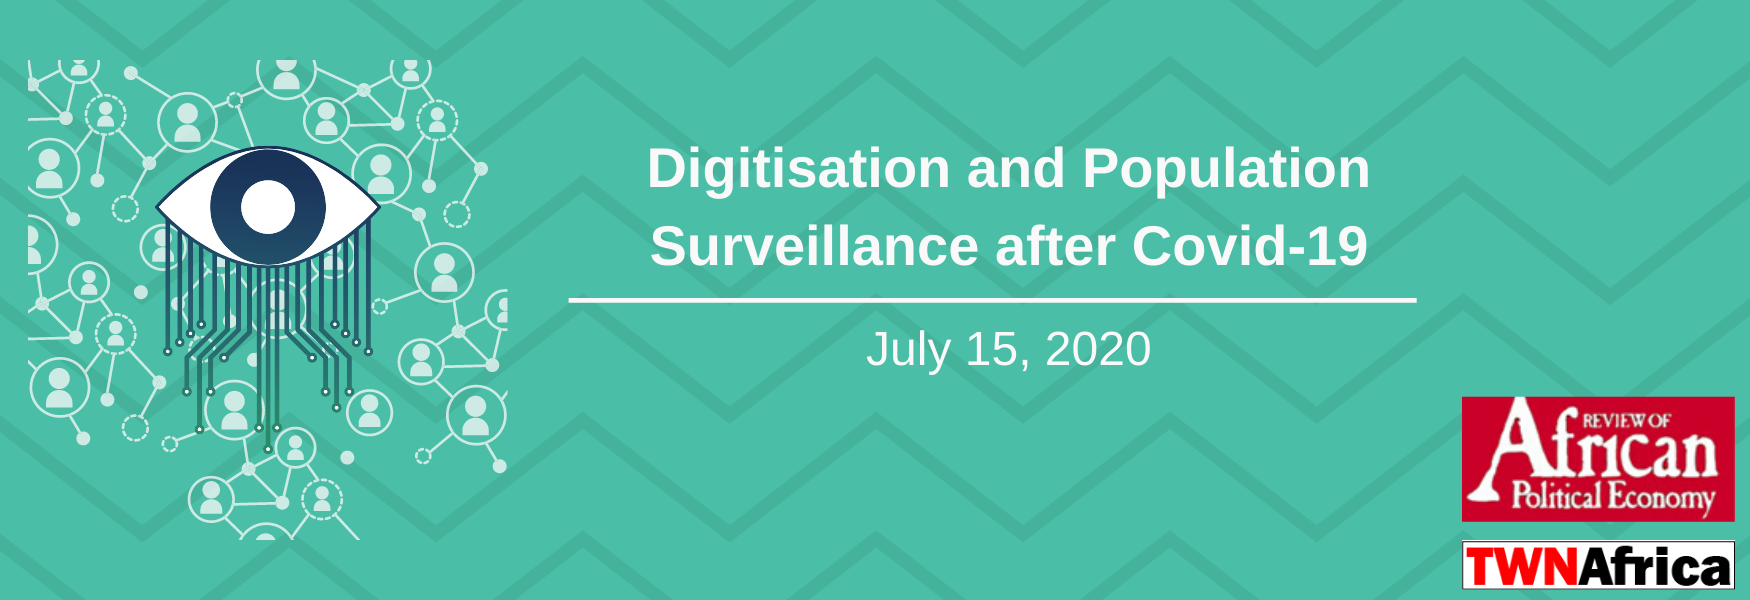 Digitisation and Population Surveillance after Covid-19